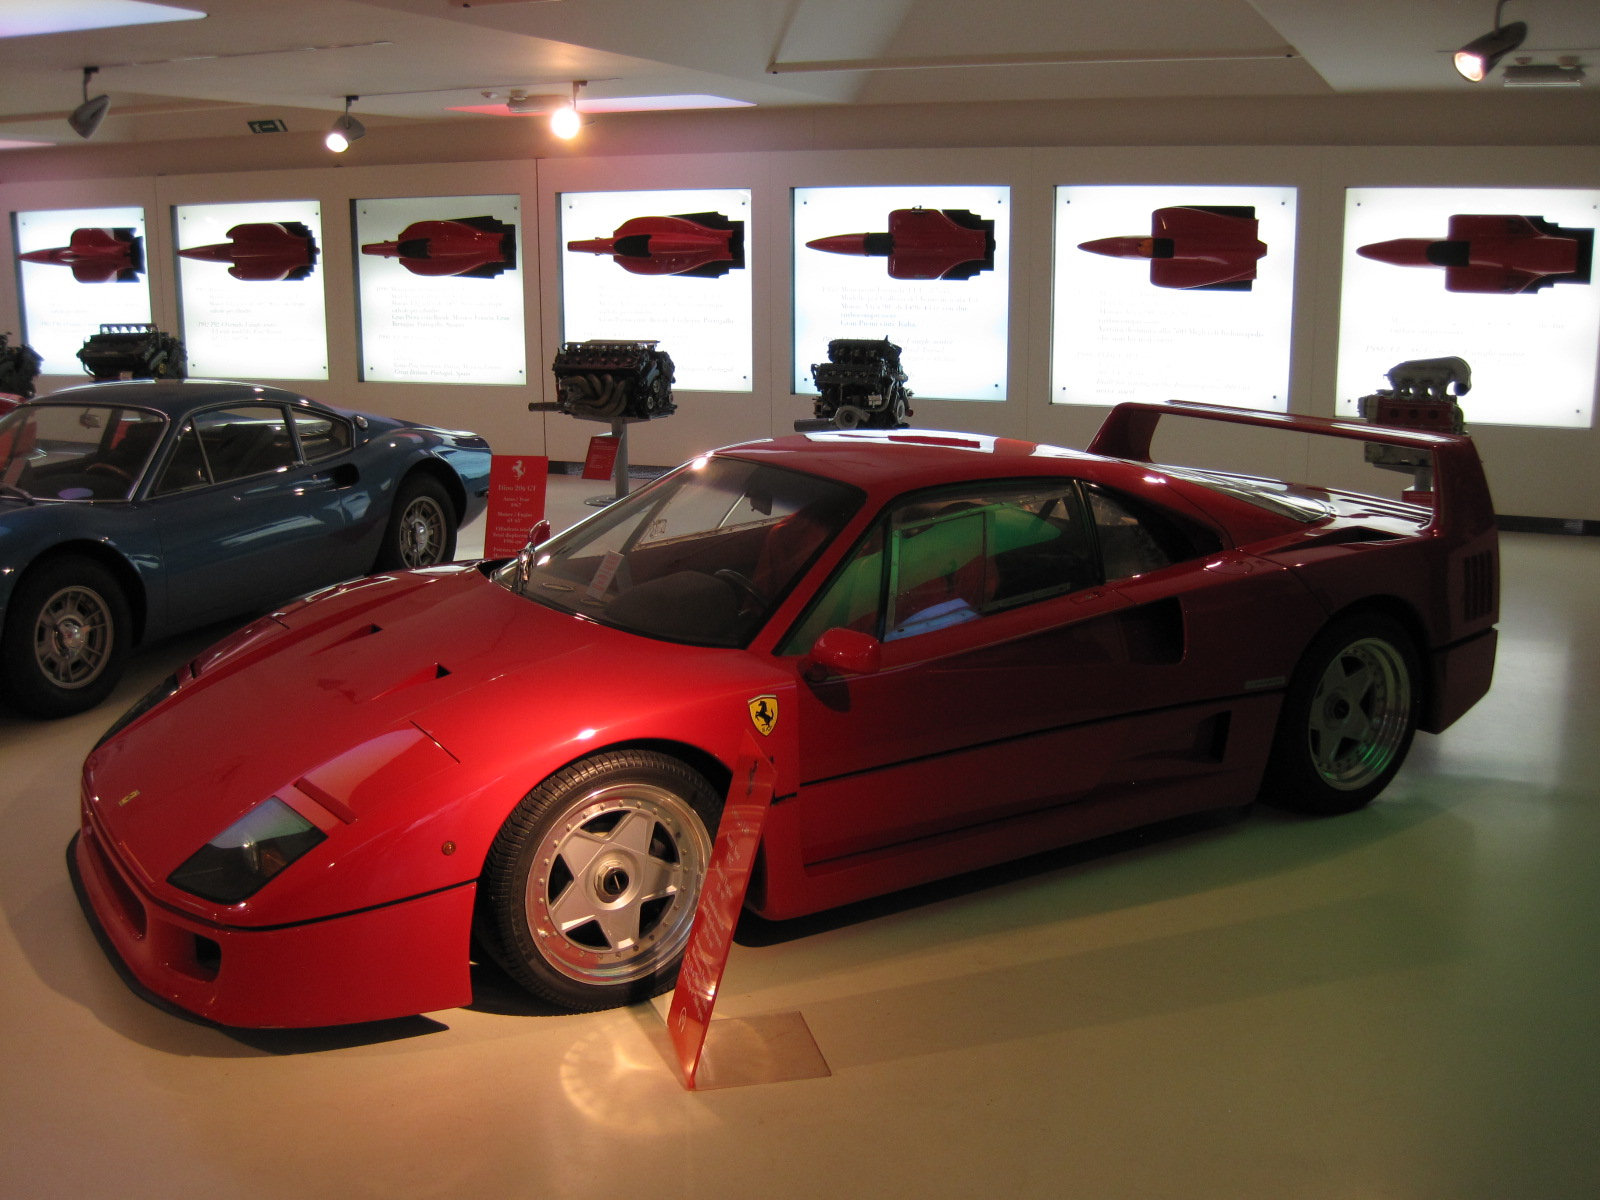 High Quality File:Collection Car Musée Ferrari 070.JPG Good Ideas